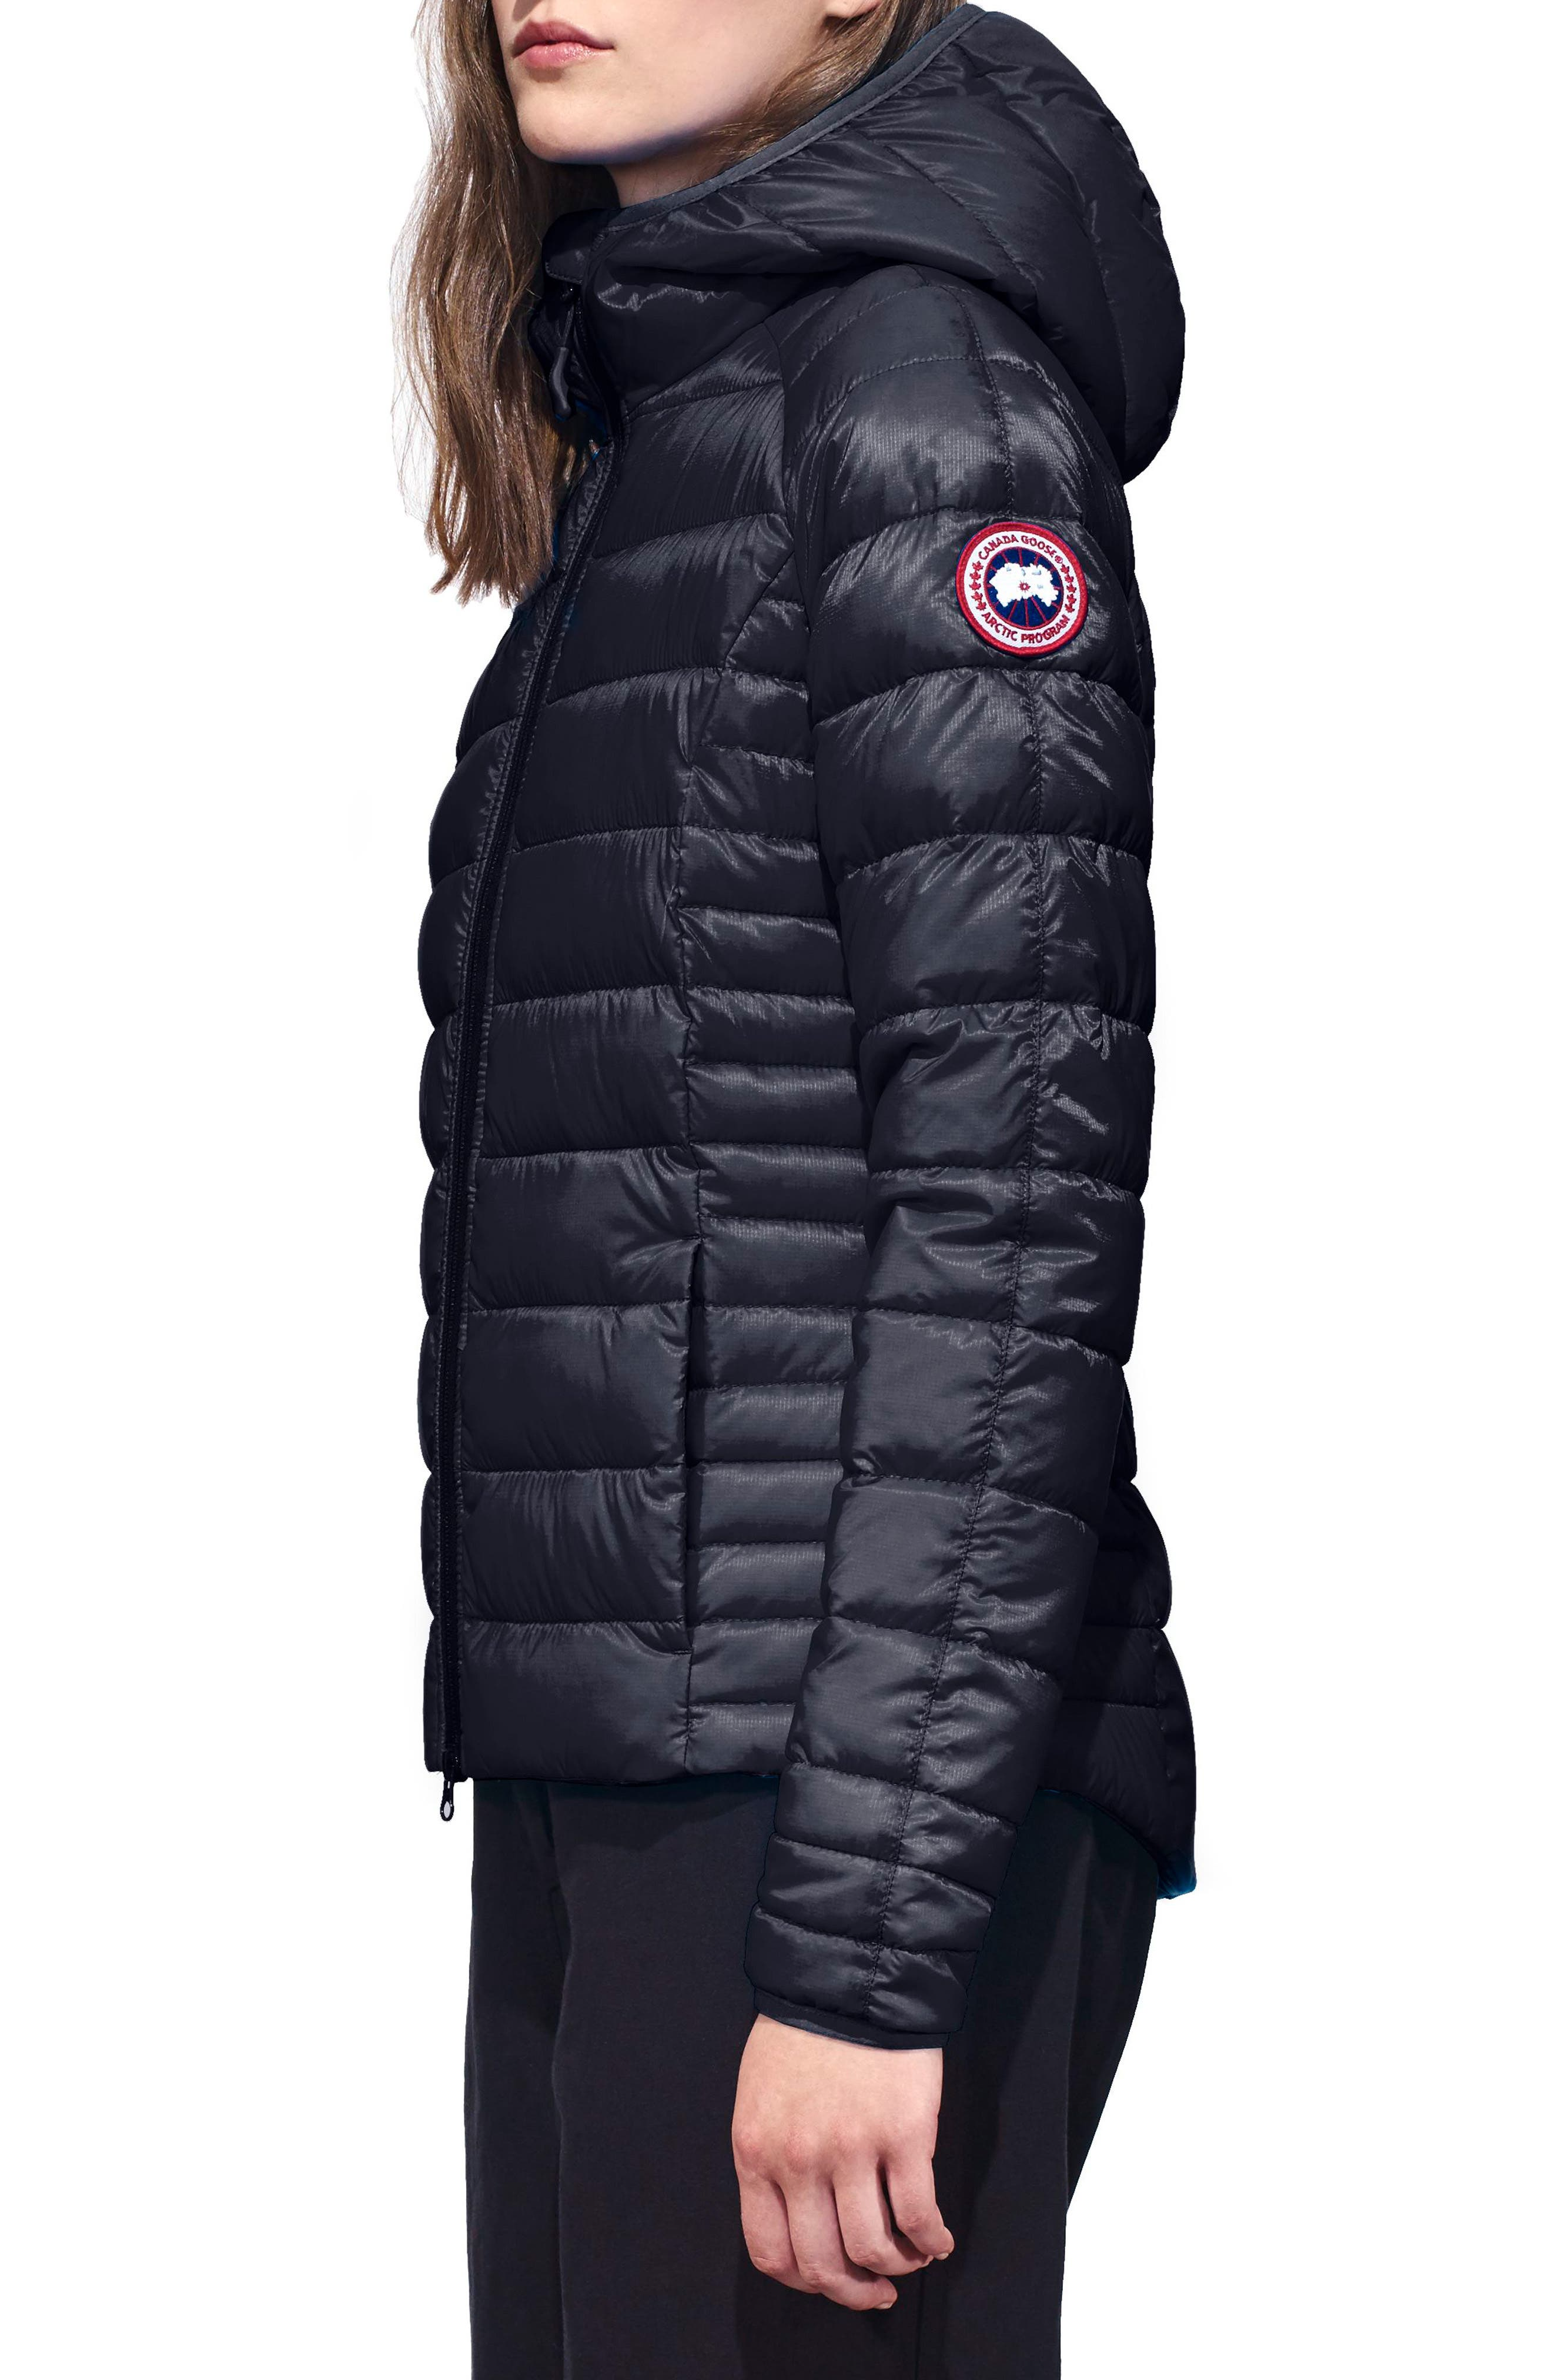 'Brookvale' Packable Hooded Quilted Down Jacket,                             Alternate thumbnail 3, color,                             ADMIRAL BLUE/ BLACK